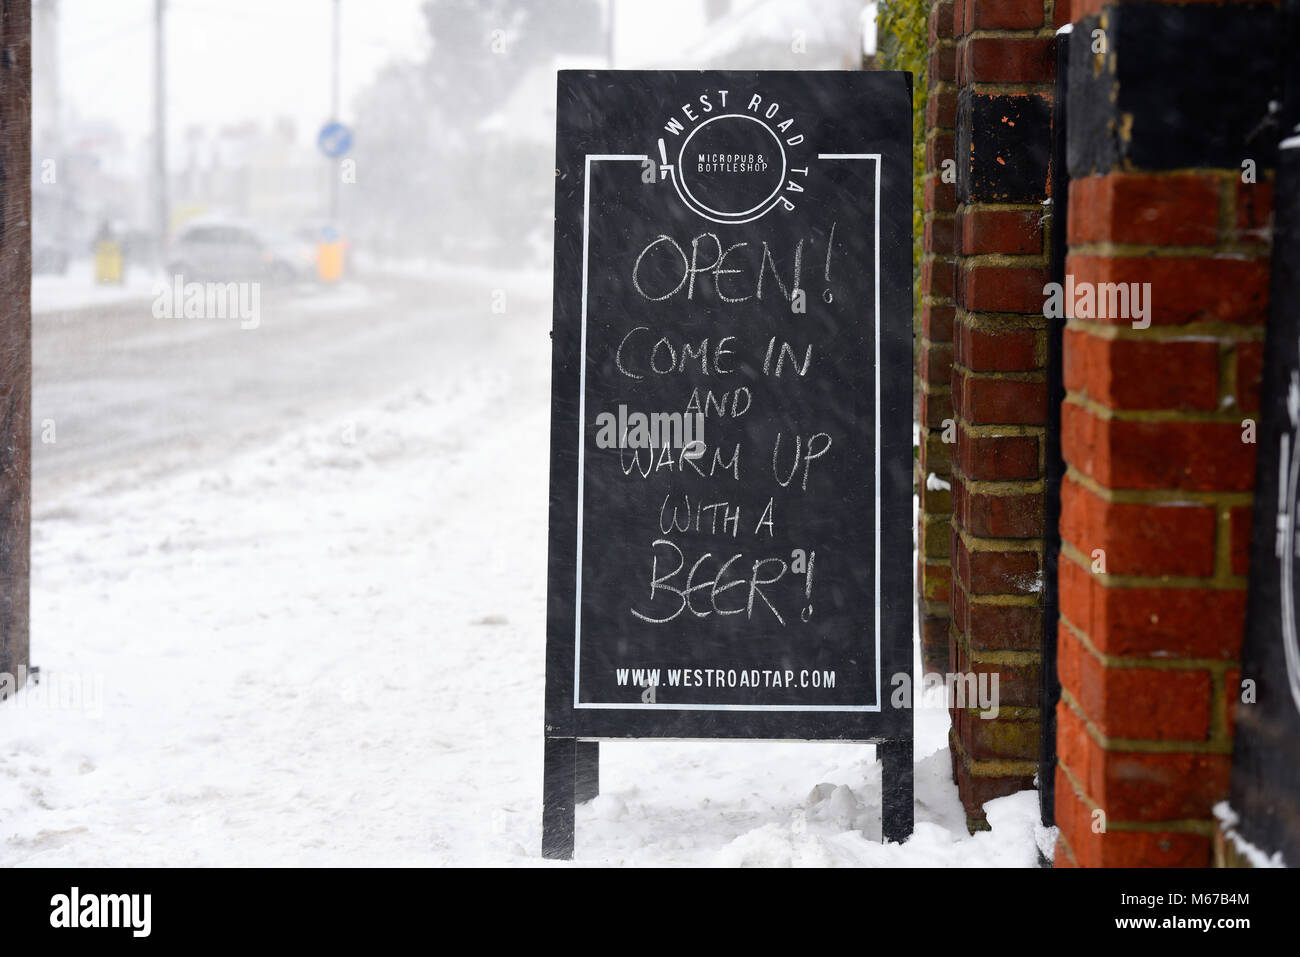 beast-from-the-east-snow-continues-to-be-an-issue-in-the-southend-M67B4M.jpg